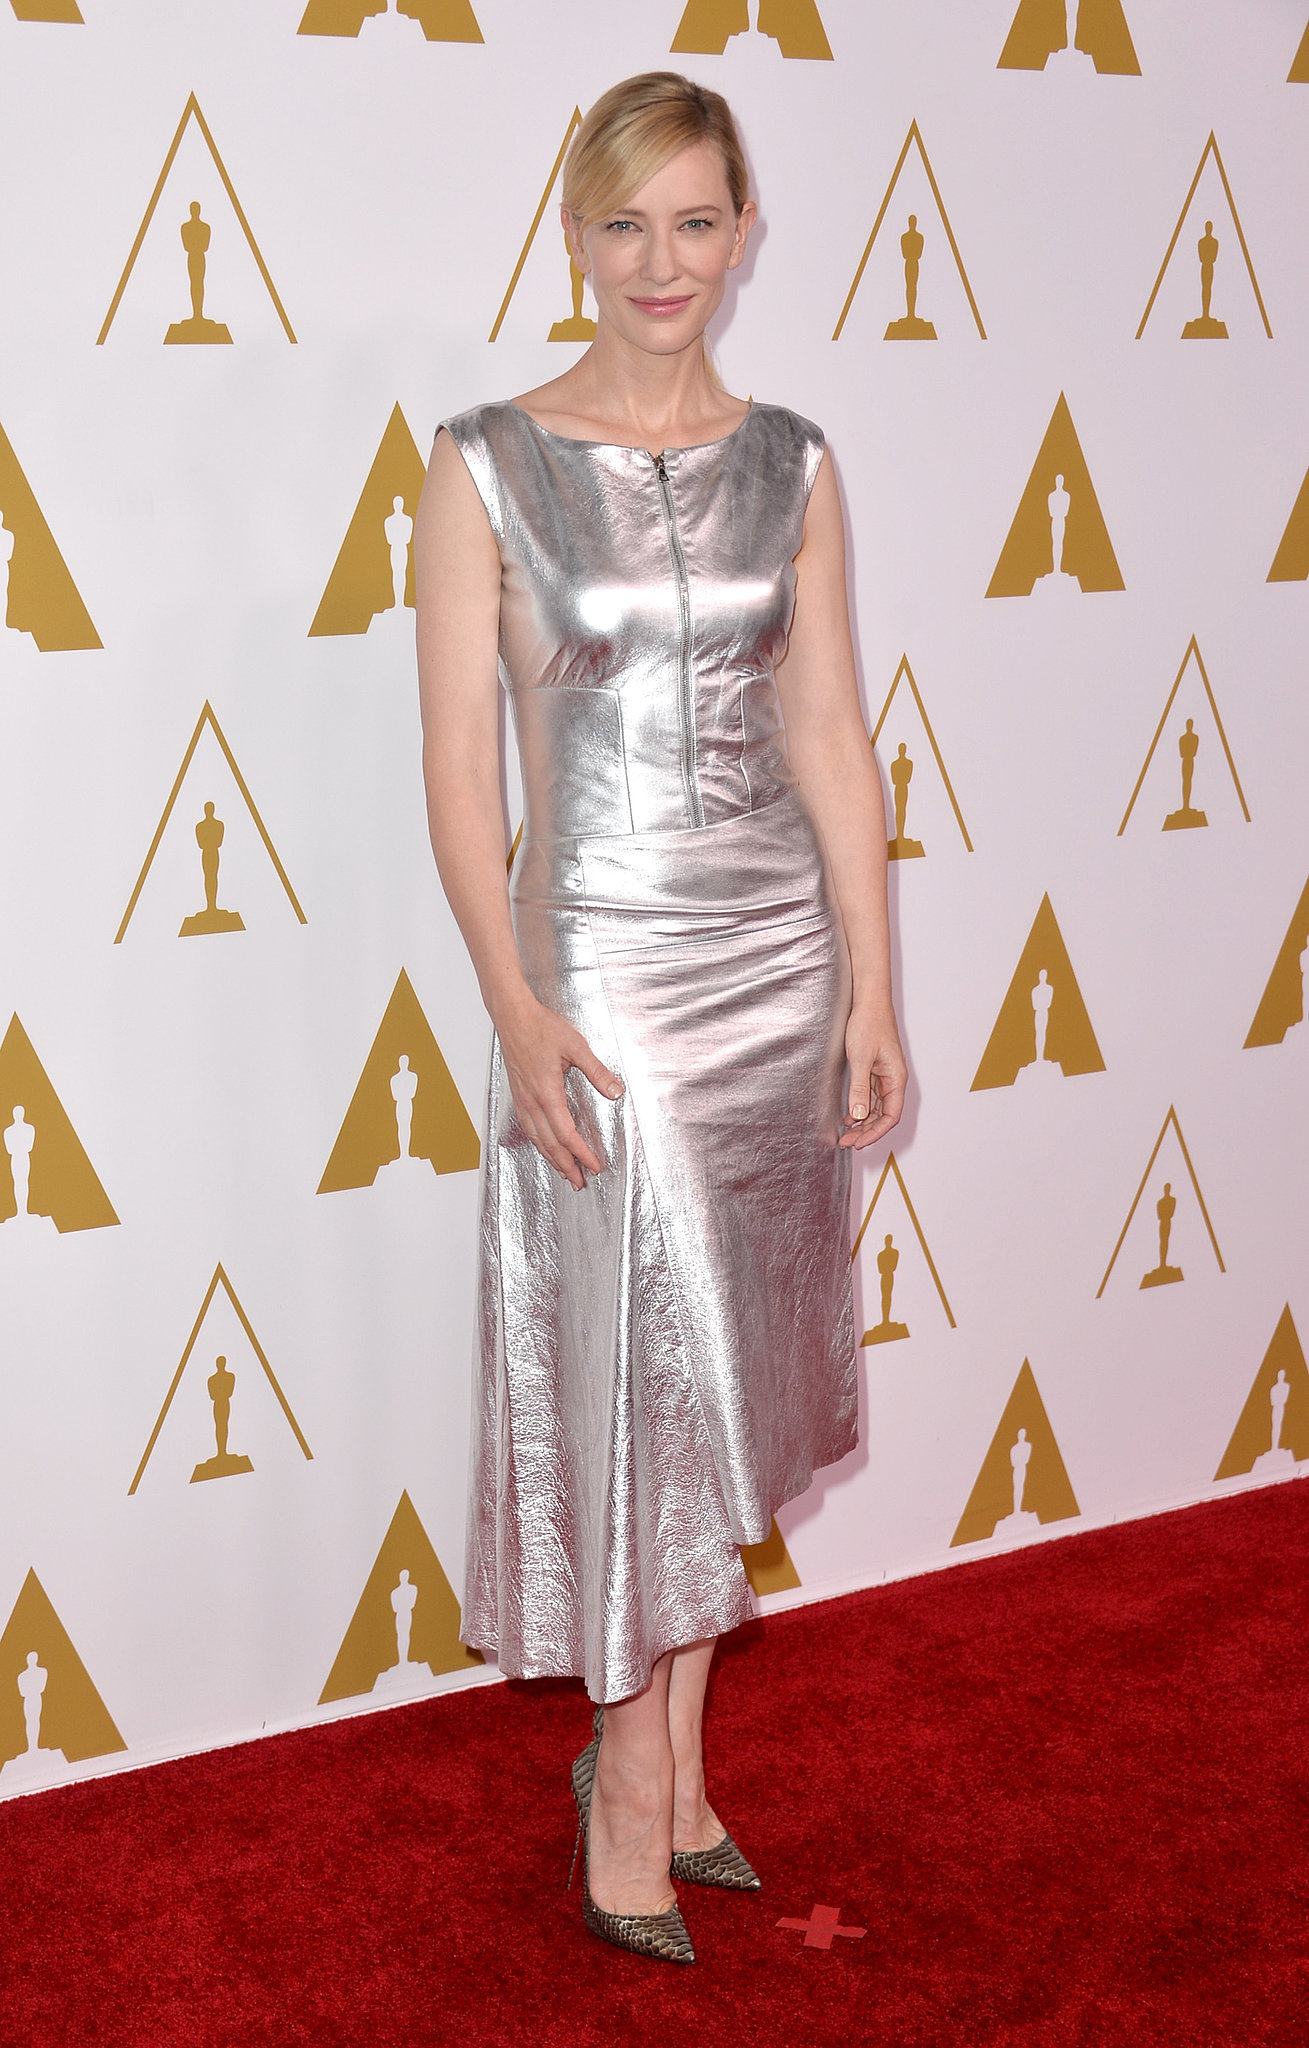 Cate Blanchett looked simply beautiful on the red carpet.